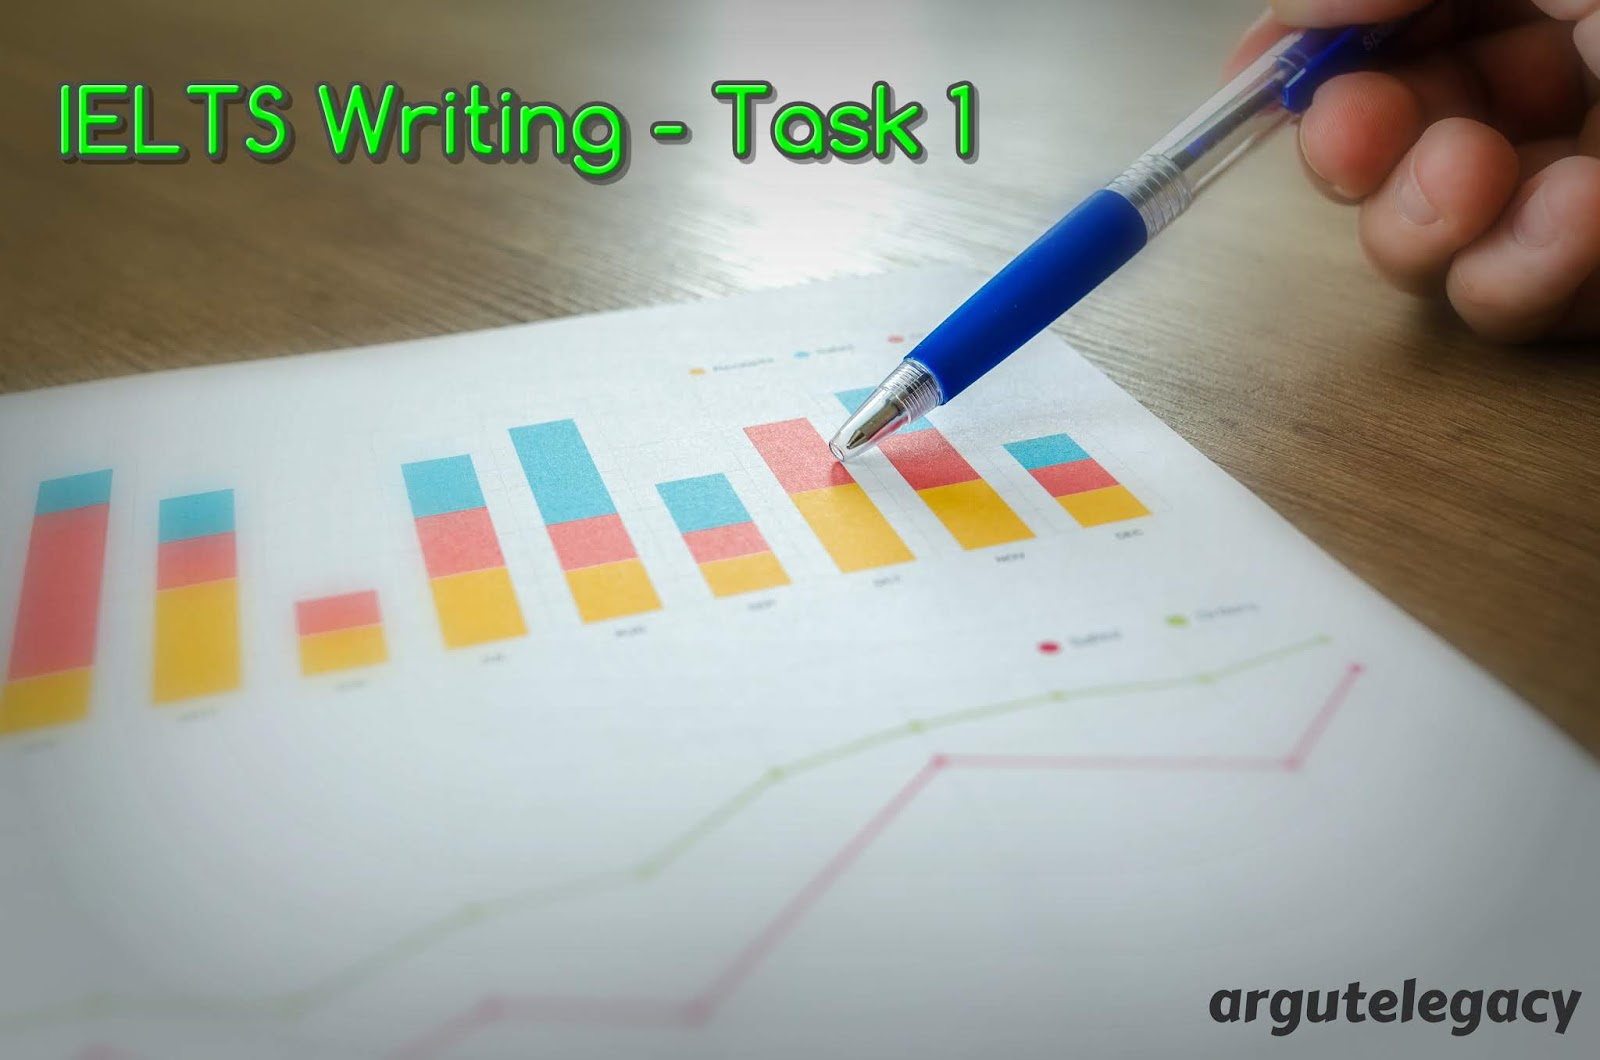 Argute legacy ielts writing task 1 key words and phrases list ielts writing task 1 key words and phrases list ccuart Image collections